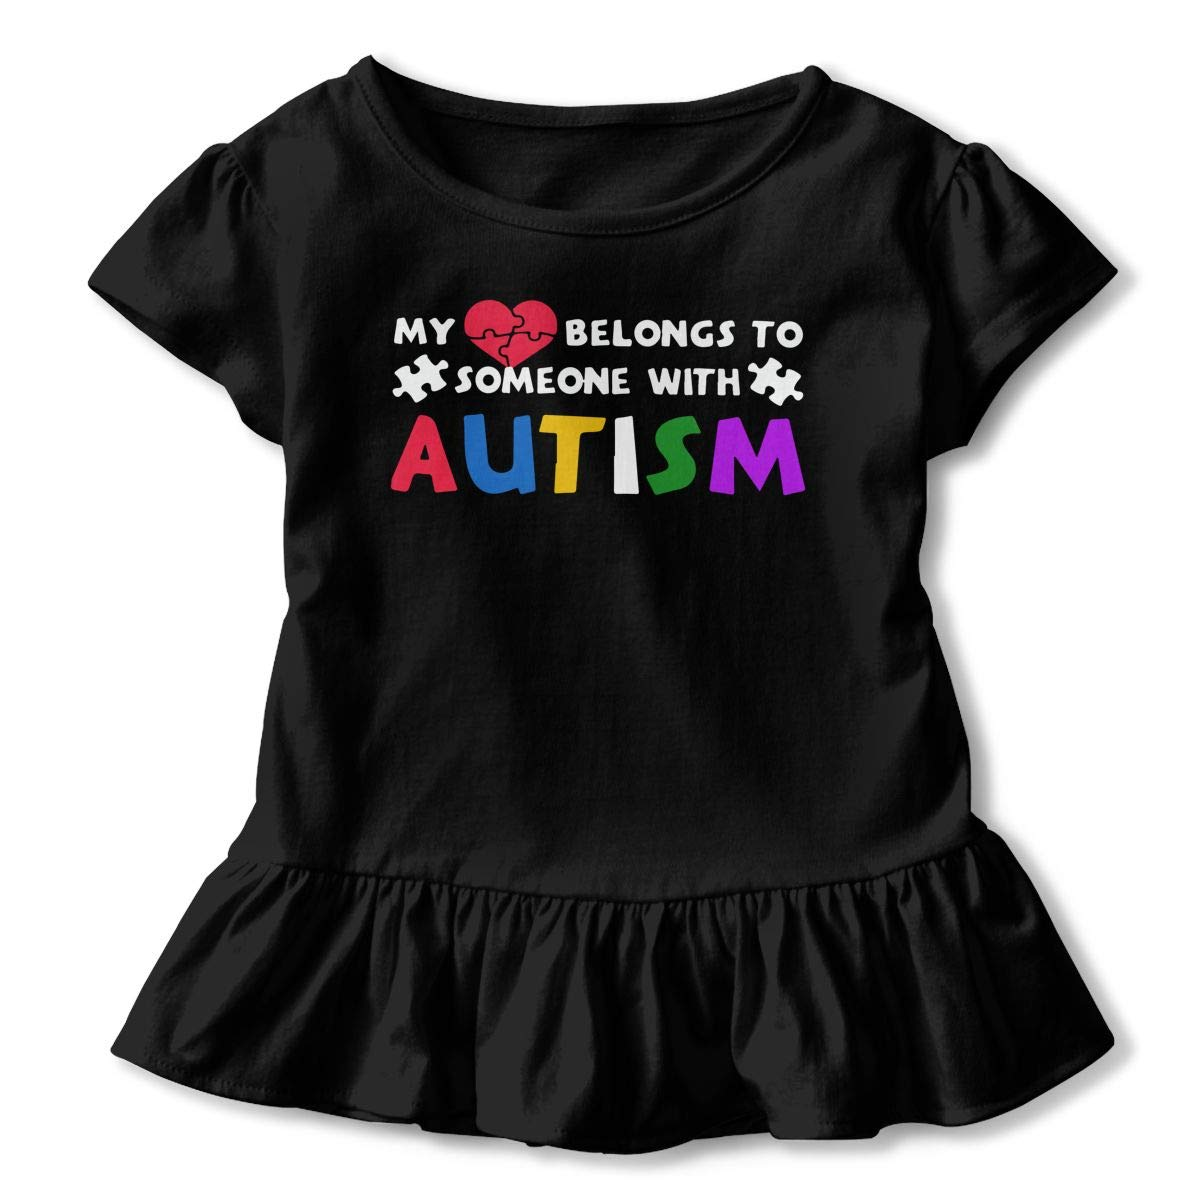 Toddler Baby Girl My Heart Belongs To Someone With Autism 100/% Cotton T Shirts Short Sleeve Ruffle Tee Basic Tops